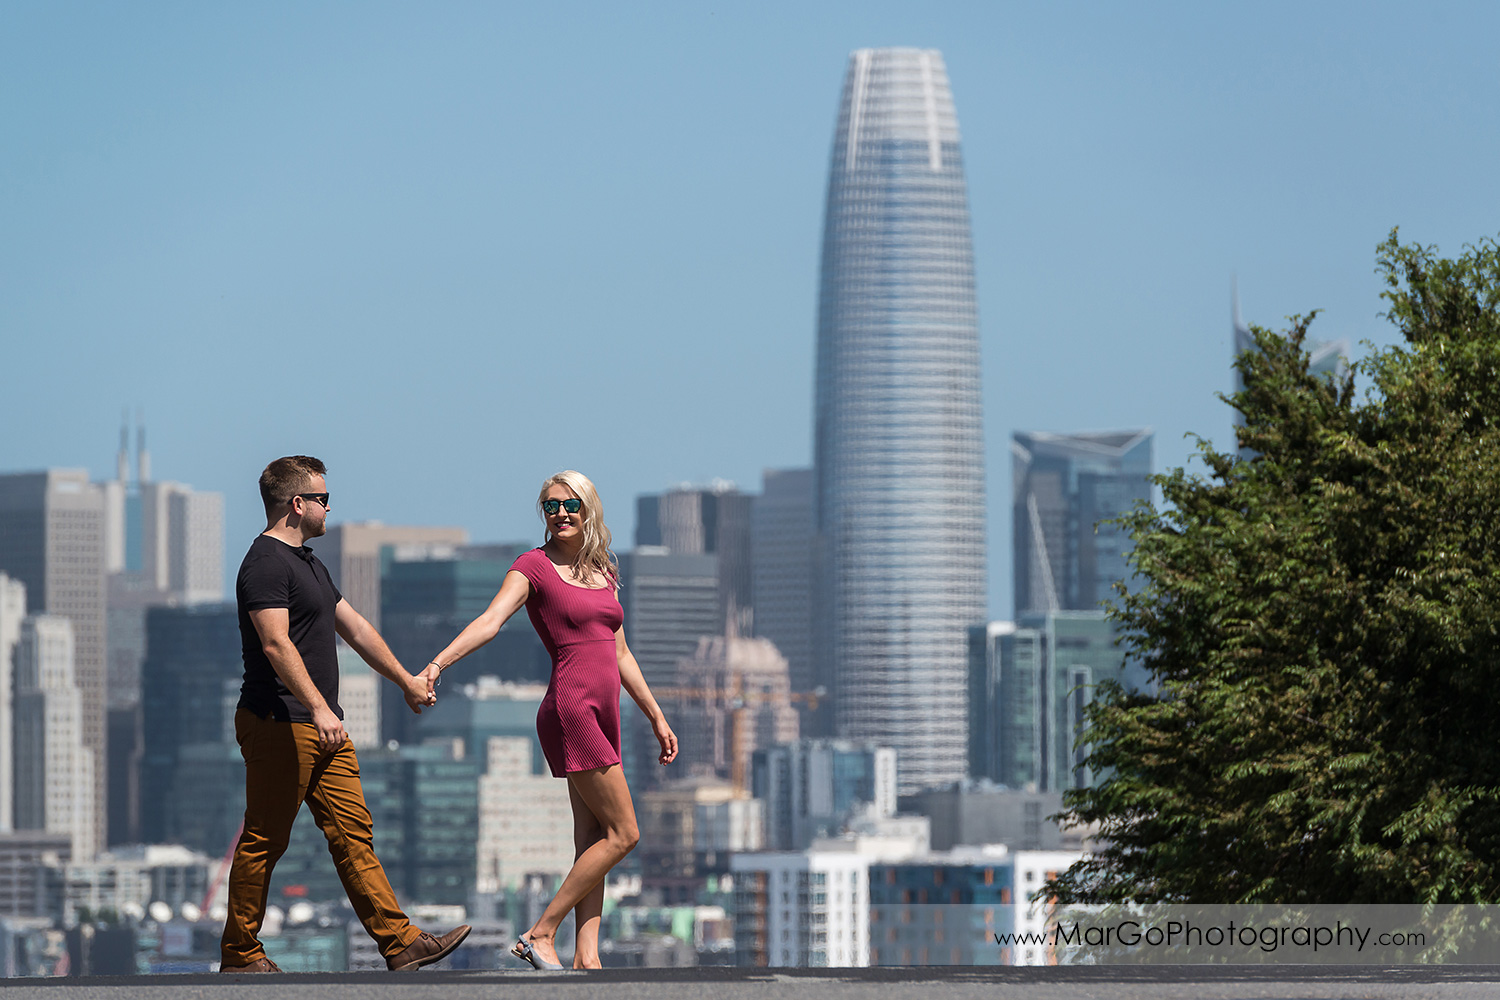 engagement session at Potrero Hill in San Francisco - woman in pink dress and man in black t-shirt and brown jeans walking on the street with amazing downtown SF view